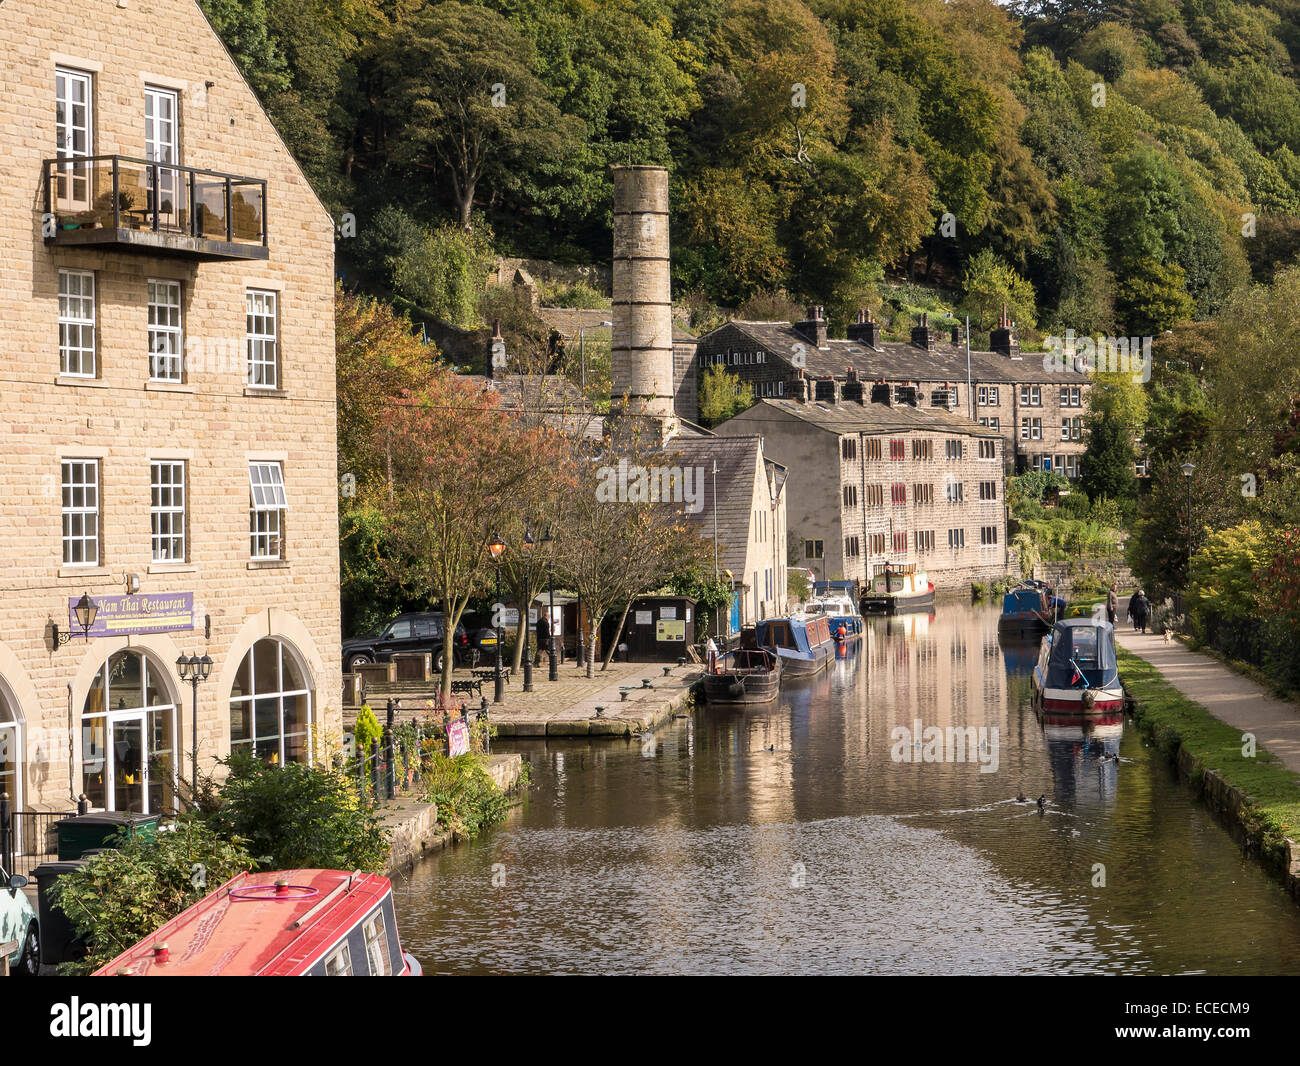 A View along the Rochdale Canal, Hebden Bridge, West Yorkshire - Stock Image